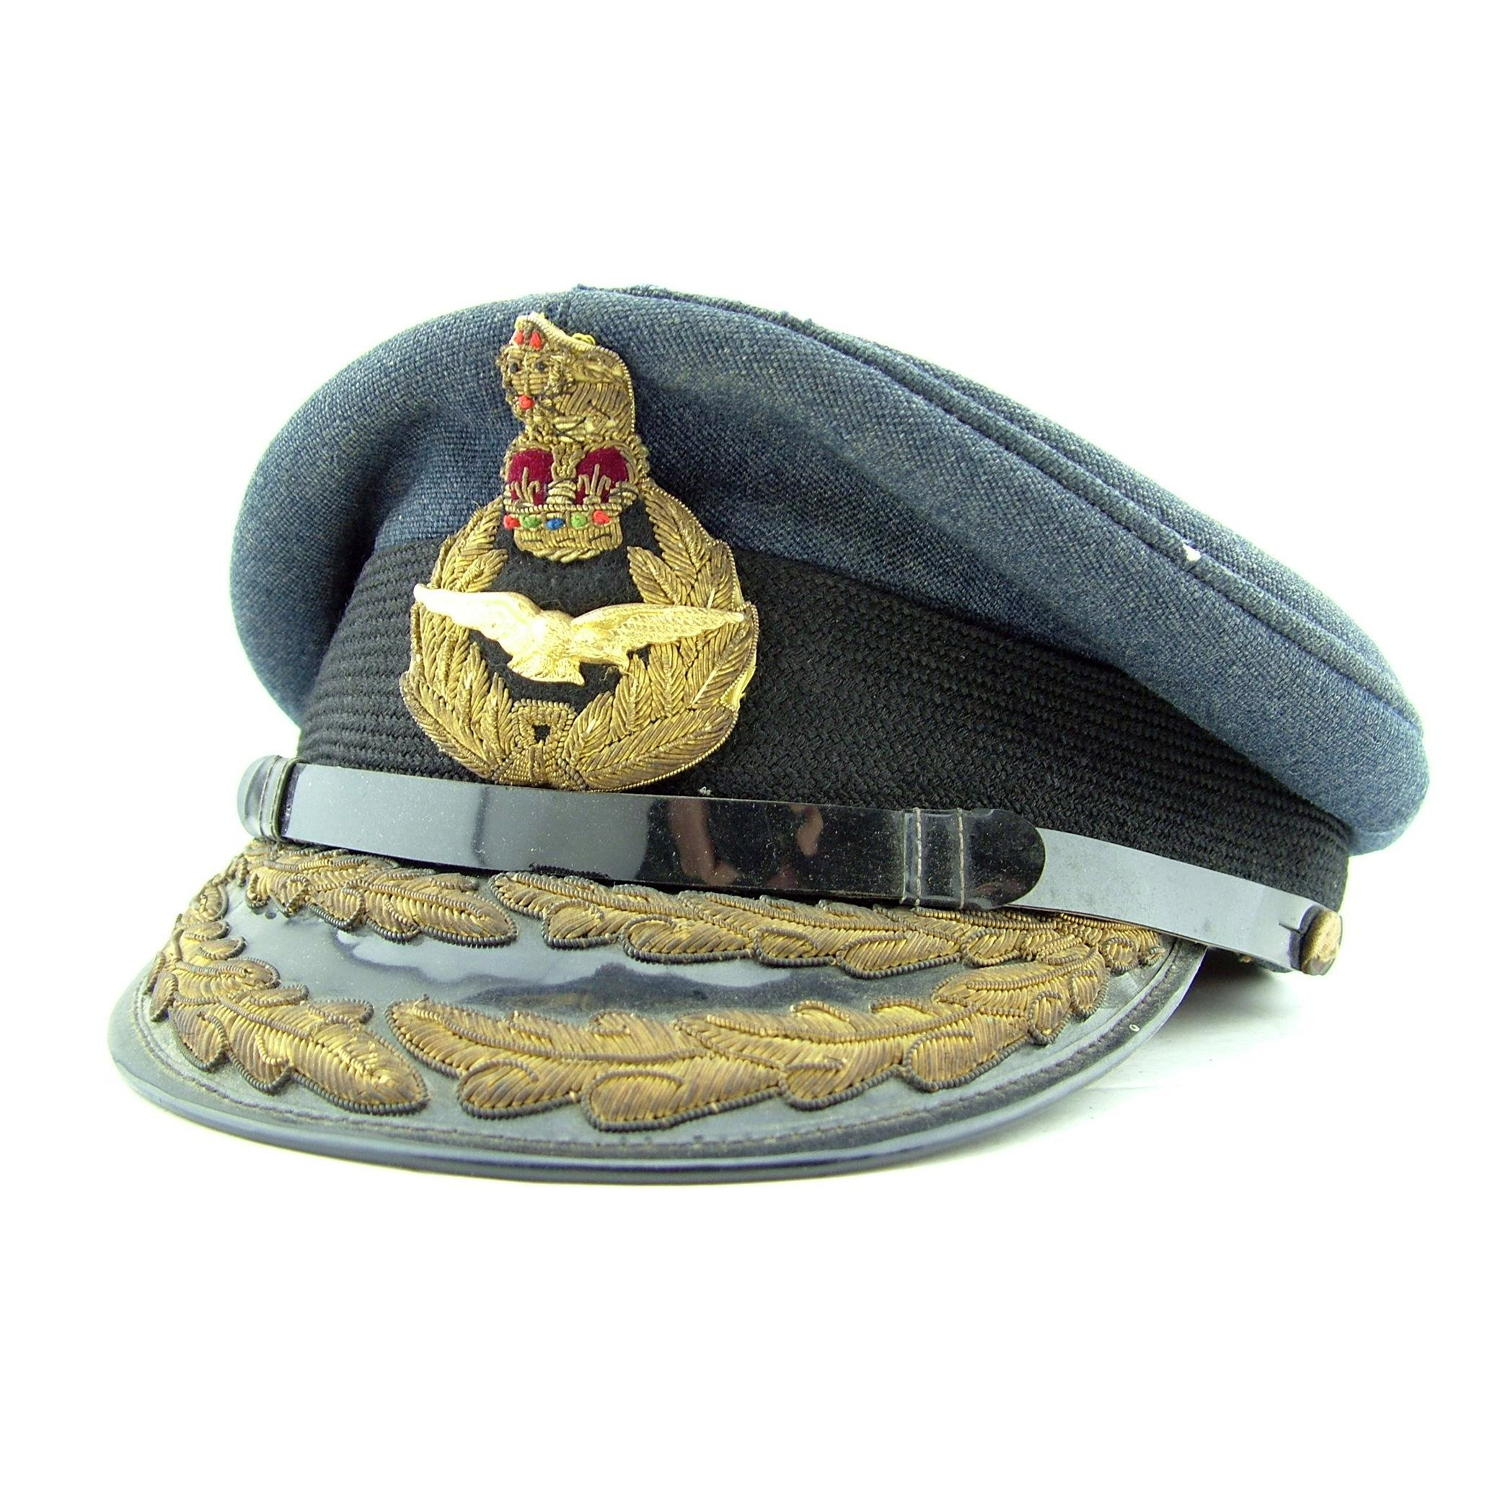 RAF 'Air Rank' service dress cap